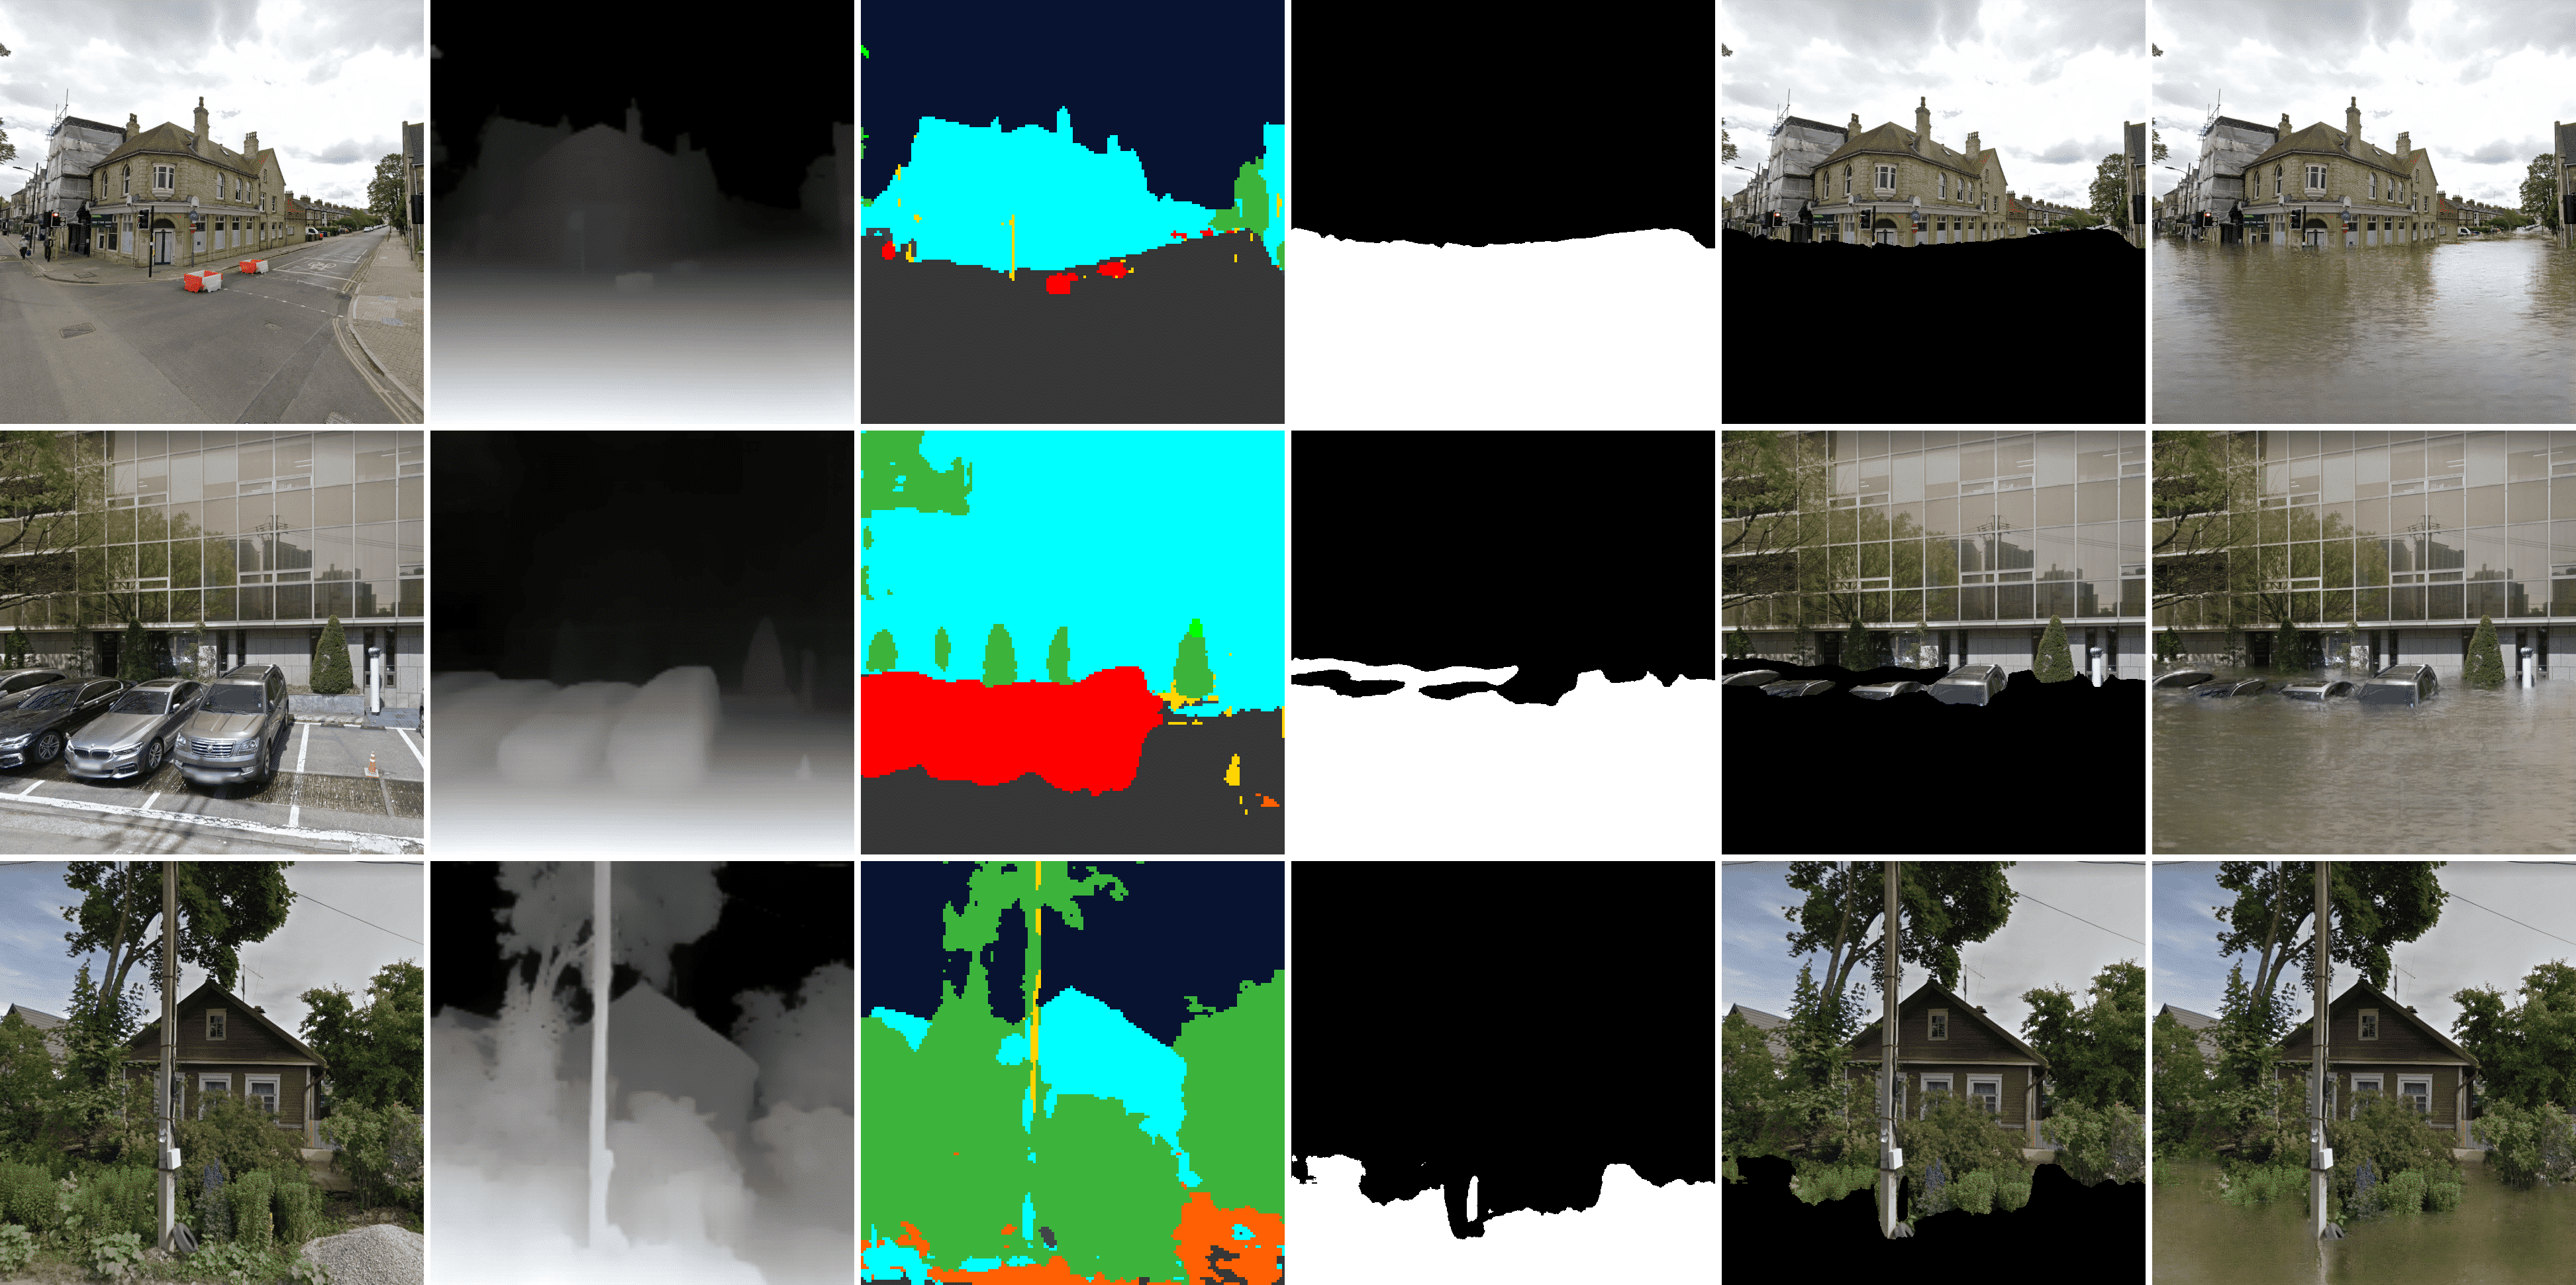 Example inferences of ClimateGAN, along with intermediate outputs. The first row shows how the Masker is able to capture complex perspectives and how the Painter is able to realistically contextualize the water with the appropriate sky and building reflections. On the second row, we can see that close-ups with distorted objects do not prevent the Masker from appropriately contouring objects. Finally, the last row illustrates how, in unusual scenes, the Masker may imperfectly capture the exact geometry of the scene but the final rendering by the Painter produces an acceptable image of a flood. More inferences including failure cases are shown in